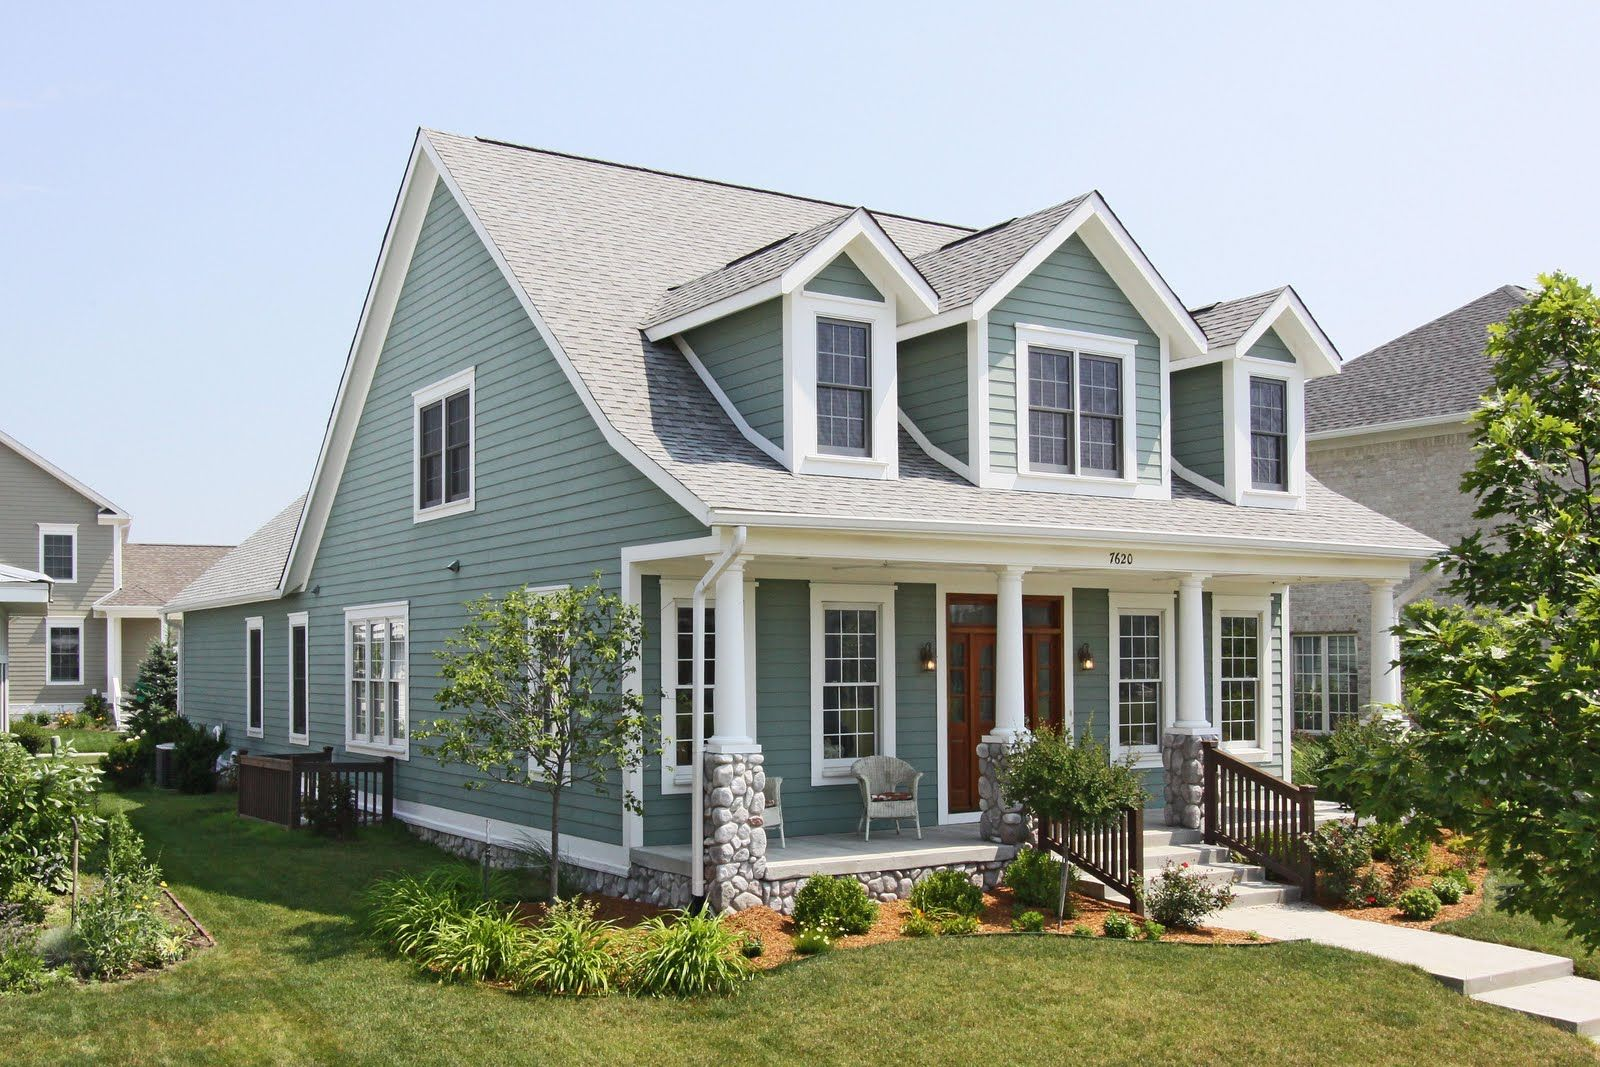 Cape Cod Home Ideas Part - 39: Cape Cod House Ideas